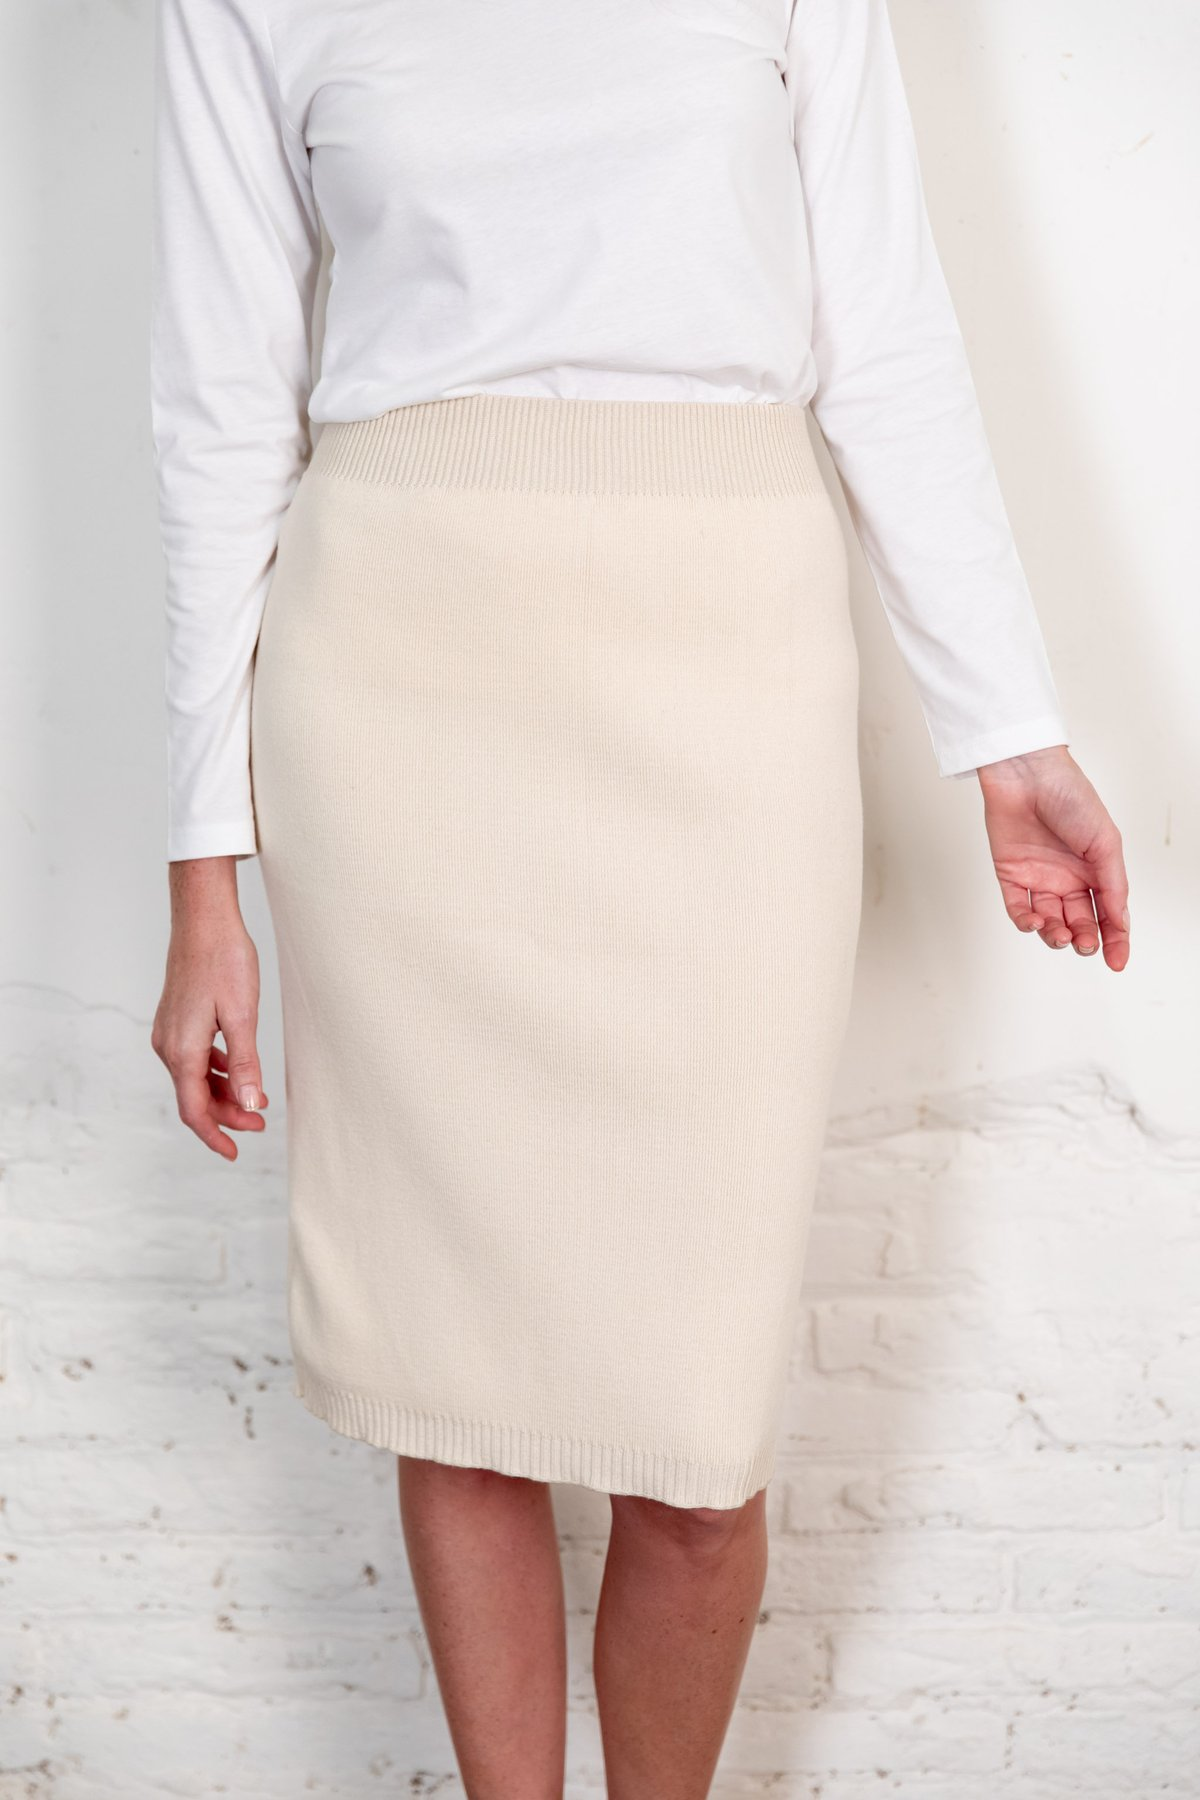 Fapun skirt natural from The Nordic Leaves